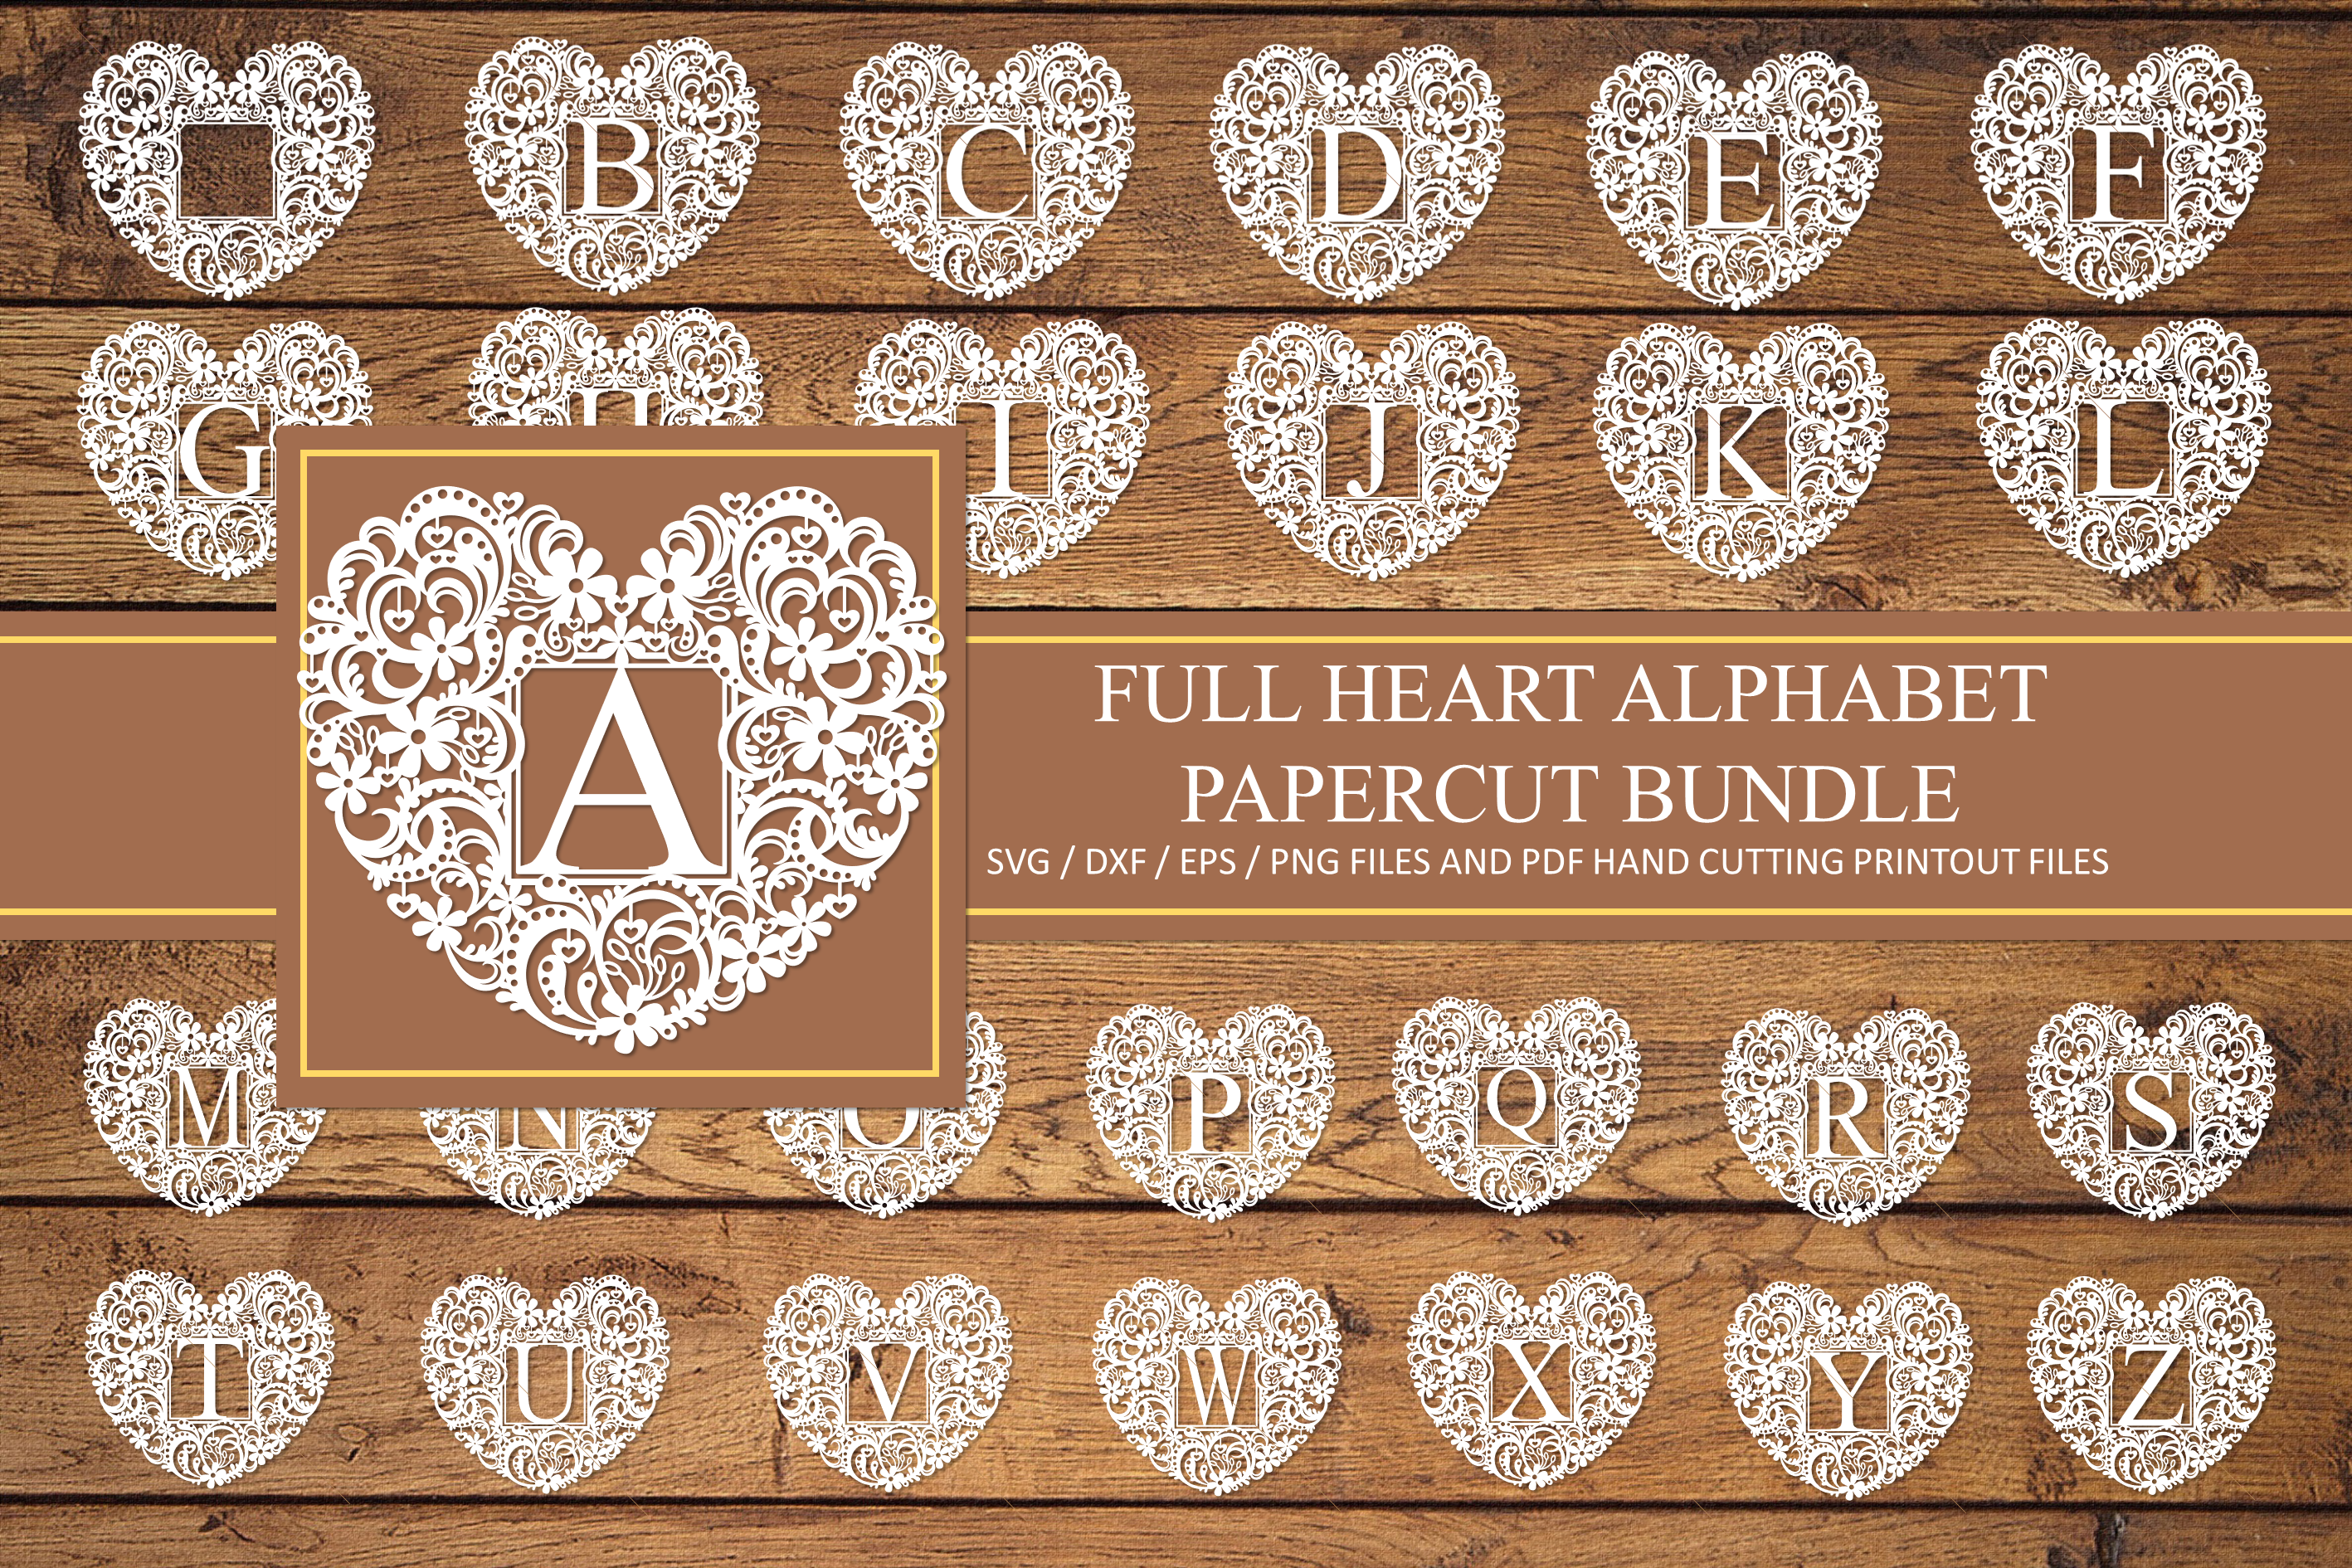 Full alphabet, heart paper cut Bundle. SVG / DXF / EPS / PNG example image 1